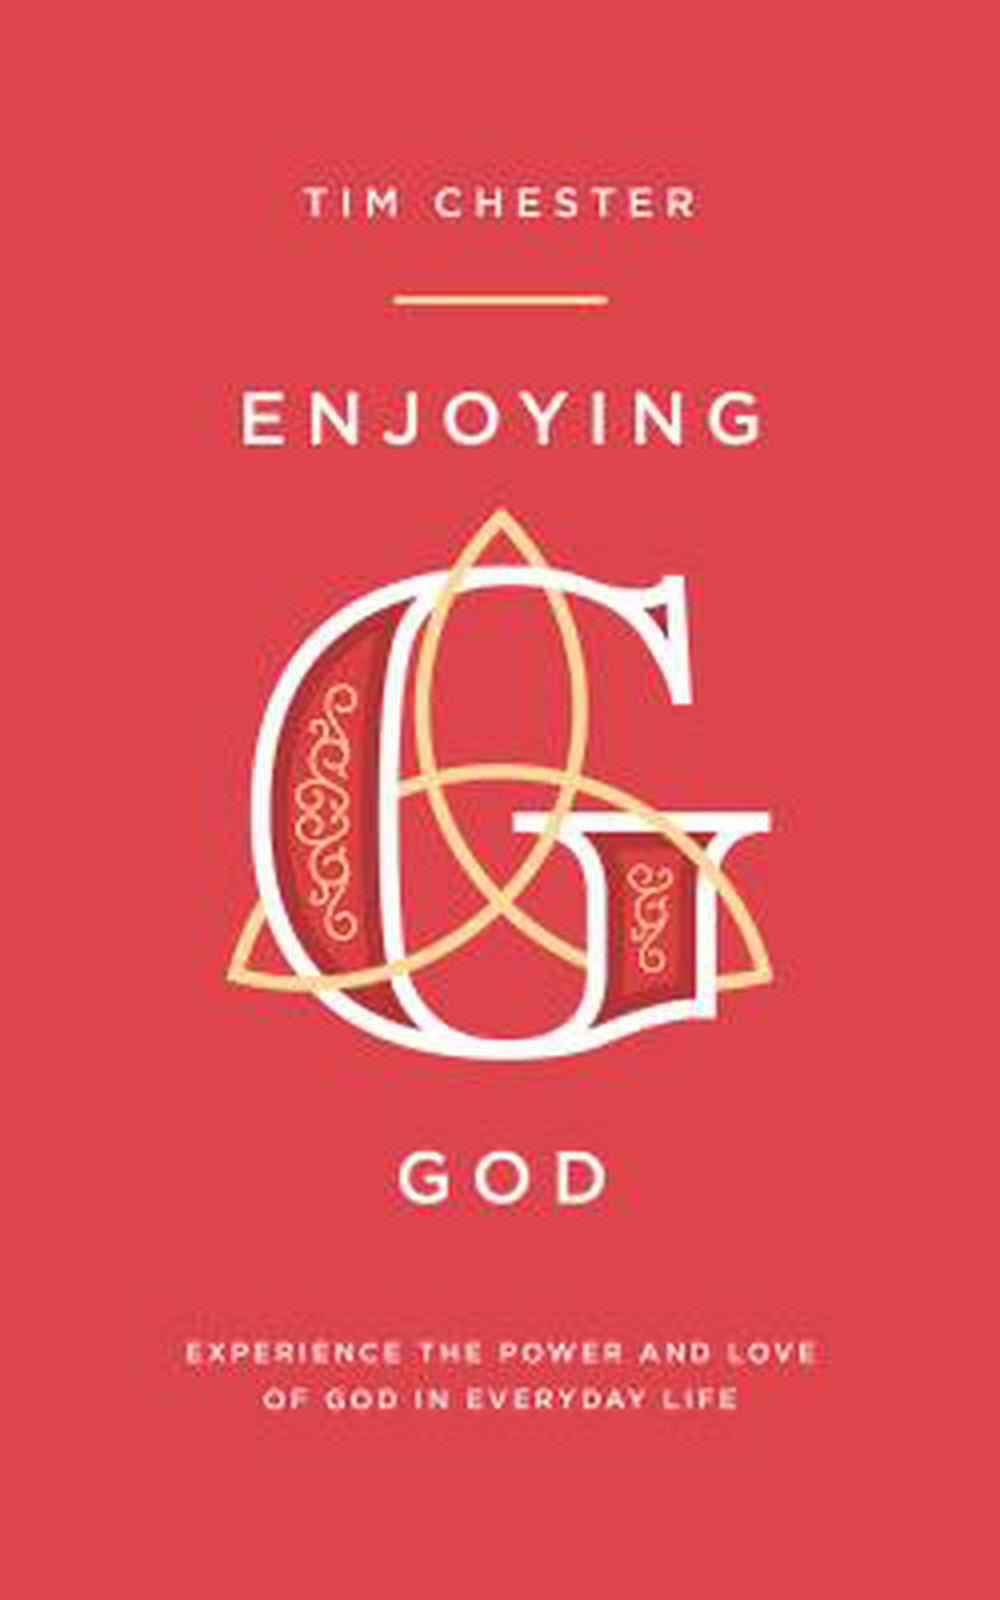 Enjoying GodExperience the Power and Love of God in Everyda... by Tim Chester, ISBN: 9781784982812